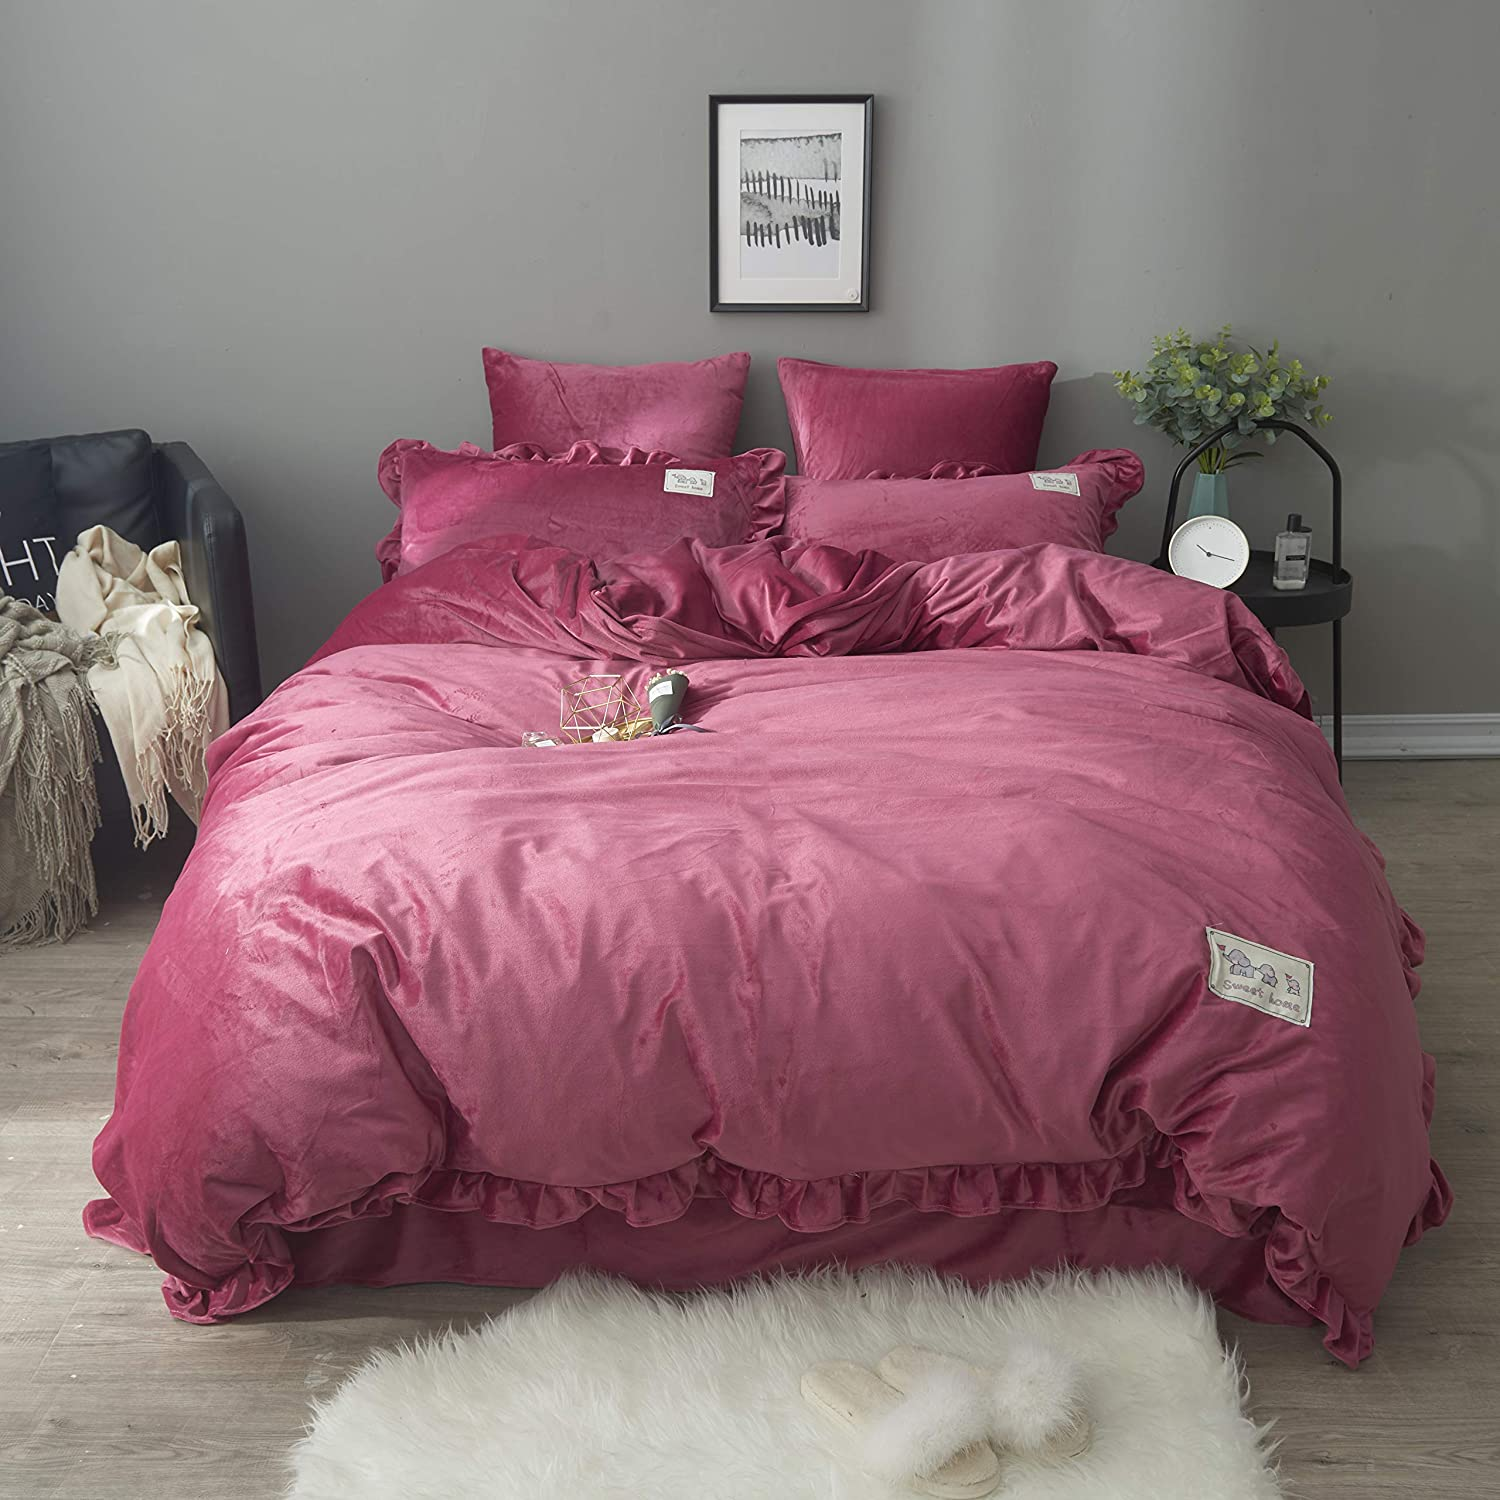 DOLDOA 100% Velvet Flannel Duvet Cover Set,3 Piece Soft Warm Bedding Comforter Cover Set Perfect for Winter,Great Gift for Famliy,Friend (Queen - 90 x 90 inch, Red)